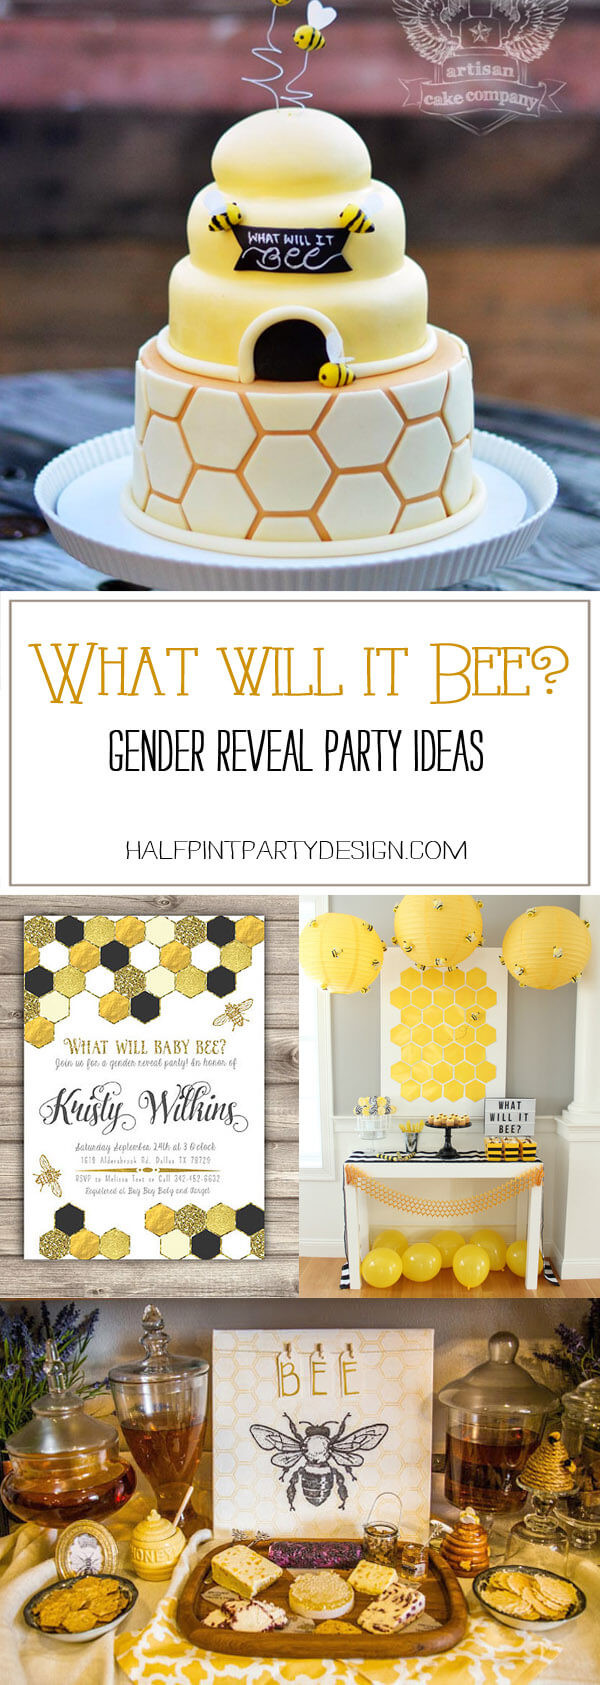 Bee Gender Reveal Party Ideas  What Will it Bee Gender Reveal Party Ideas Halfpint